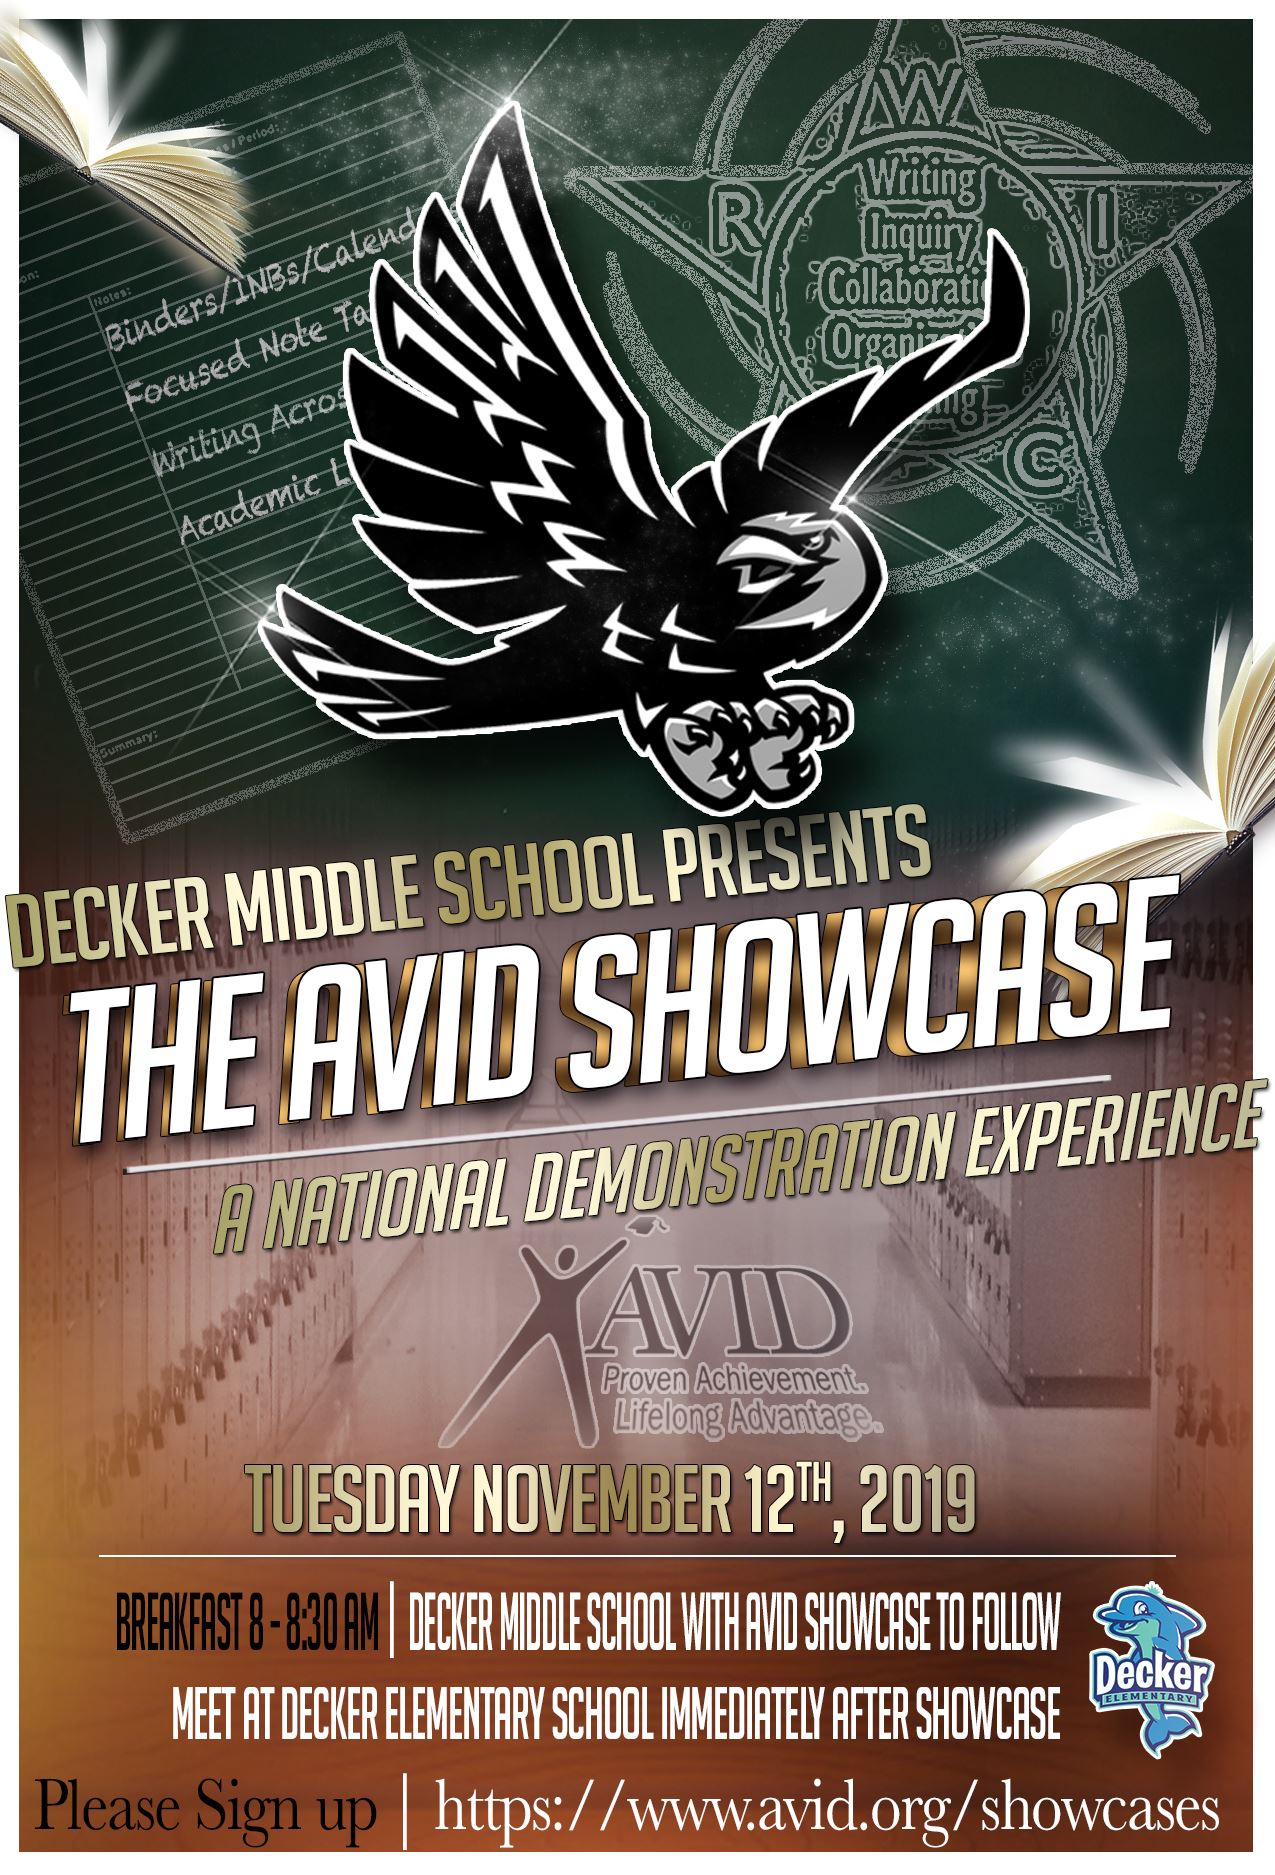 Decker Middle School presents AVID Showcase